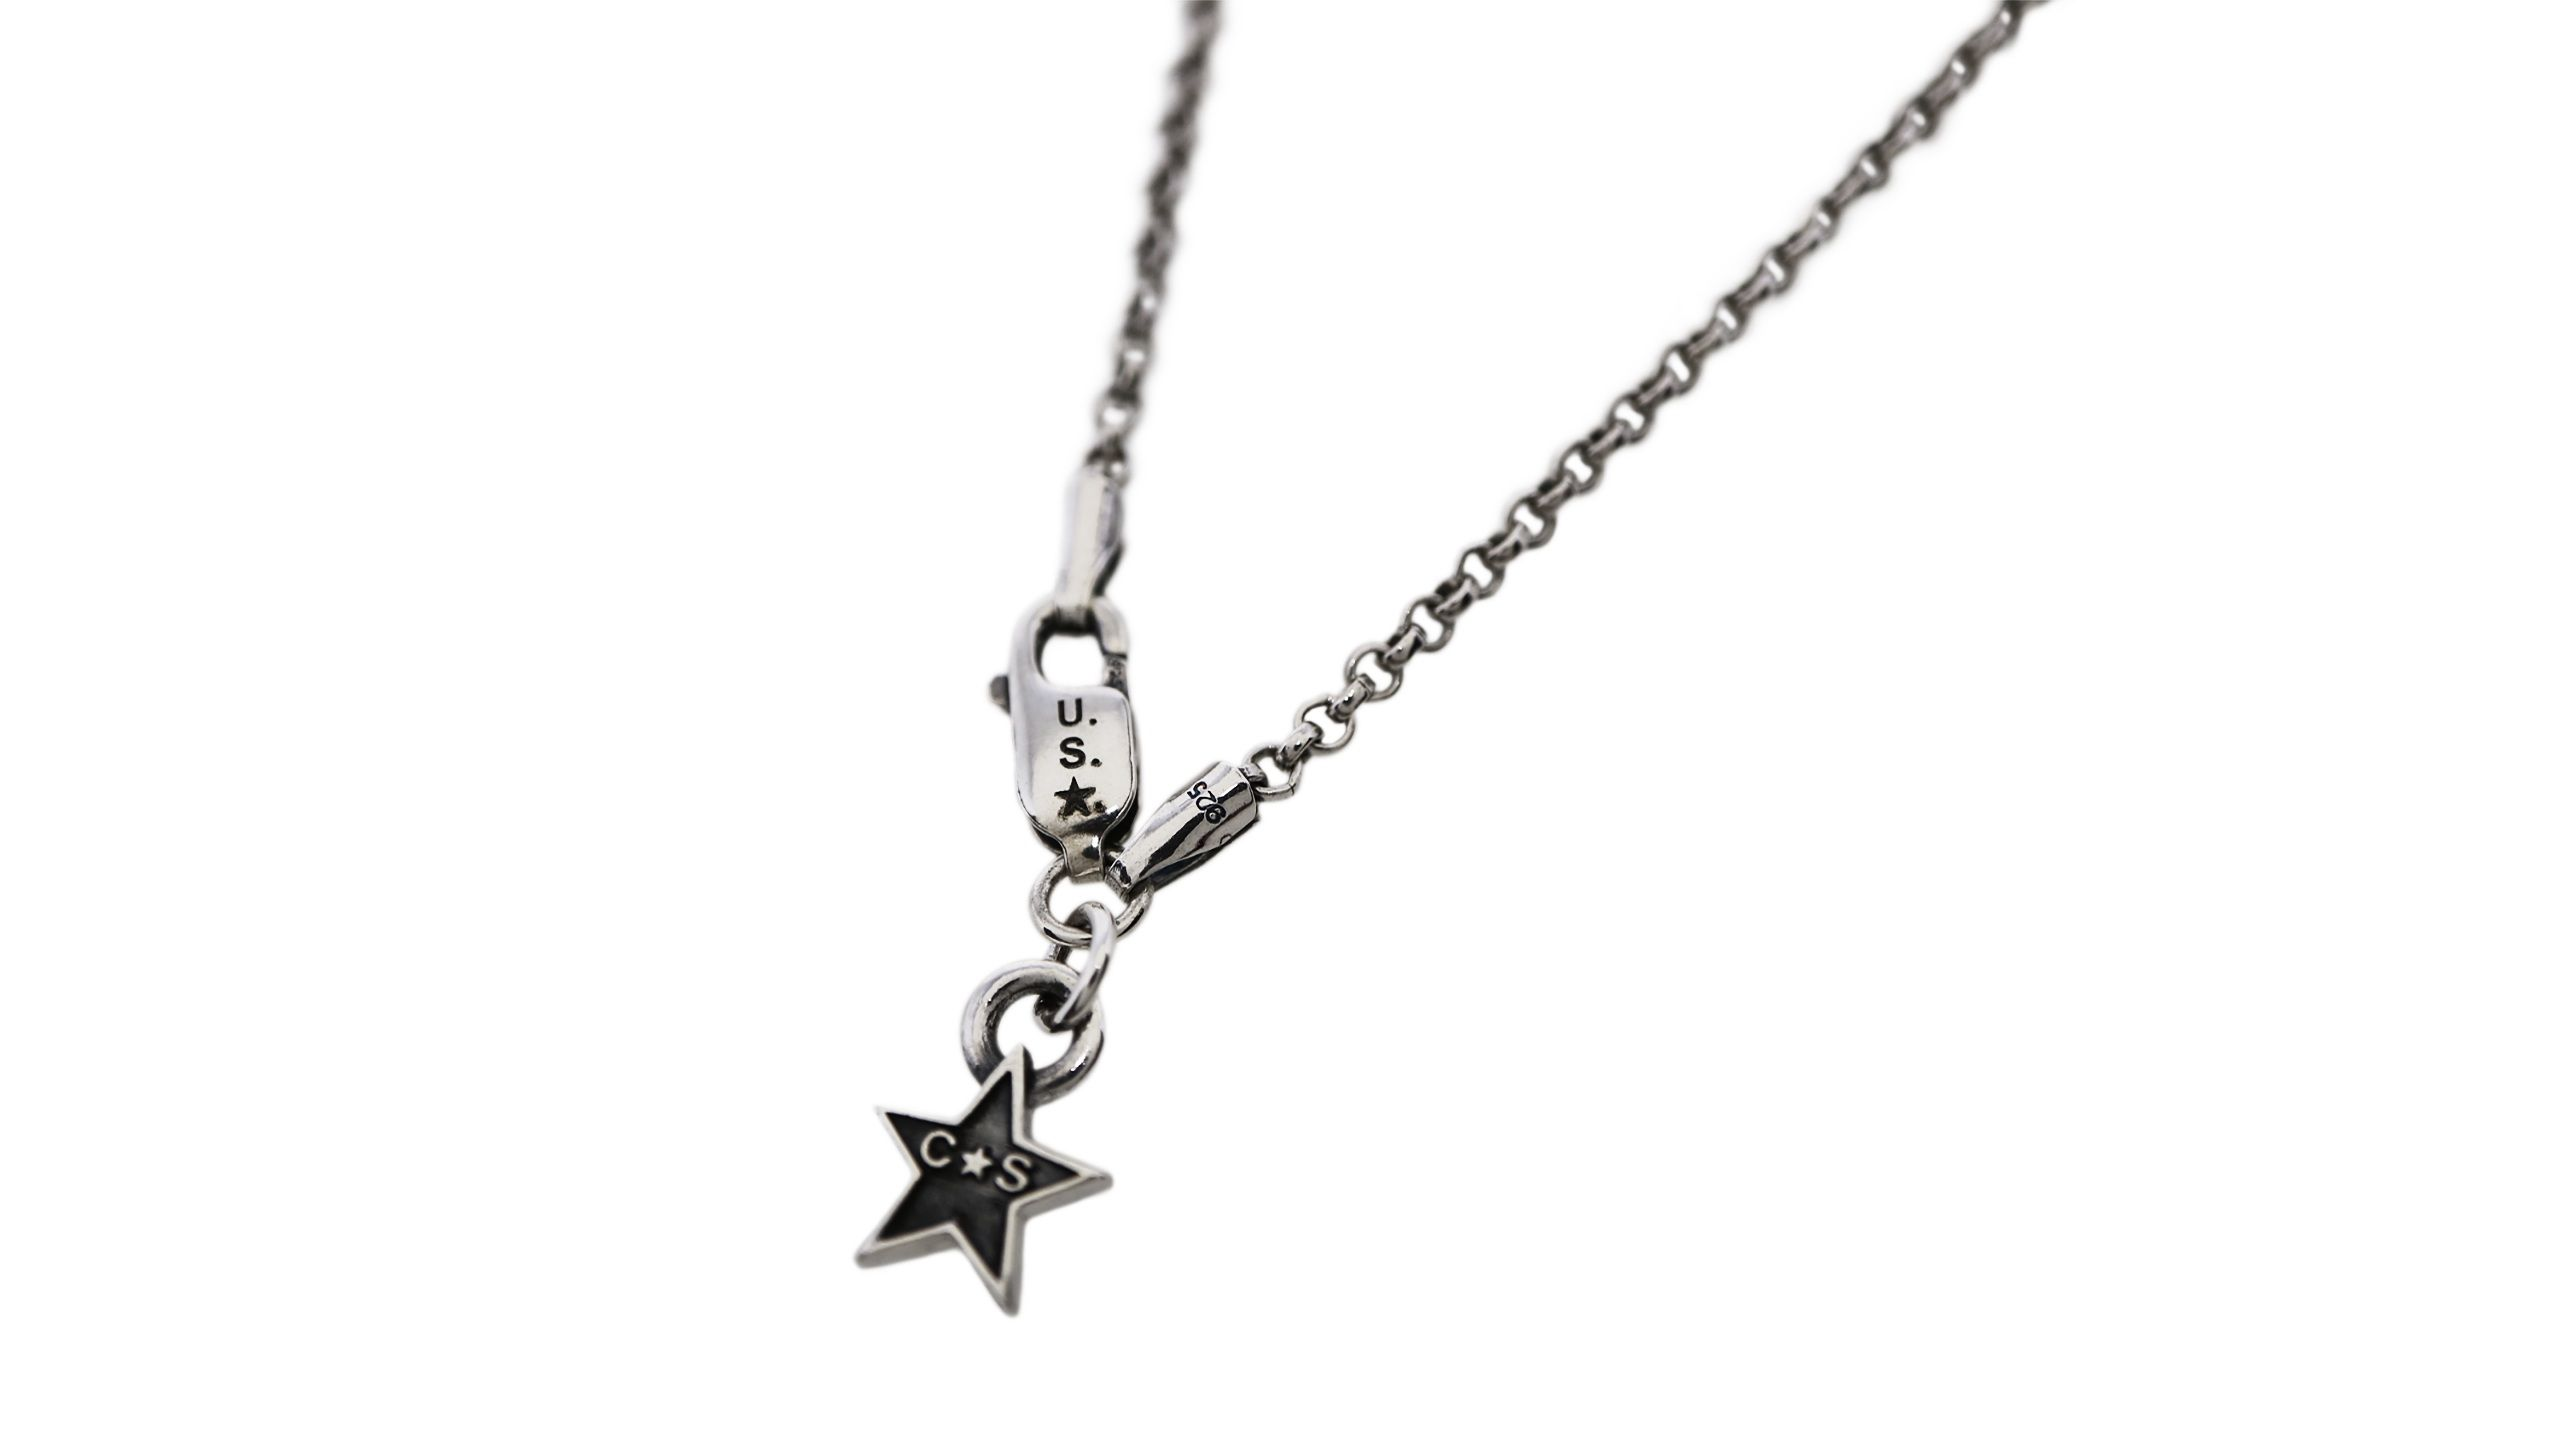 CS TINY STAR LOGO CHAIN (20 inch)  [USD $330]